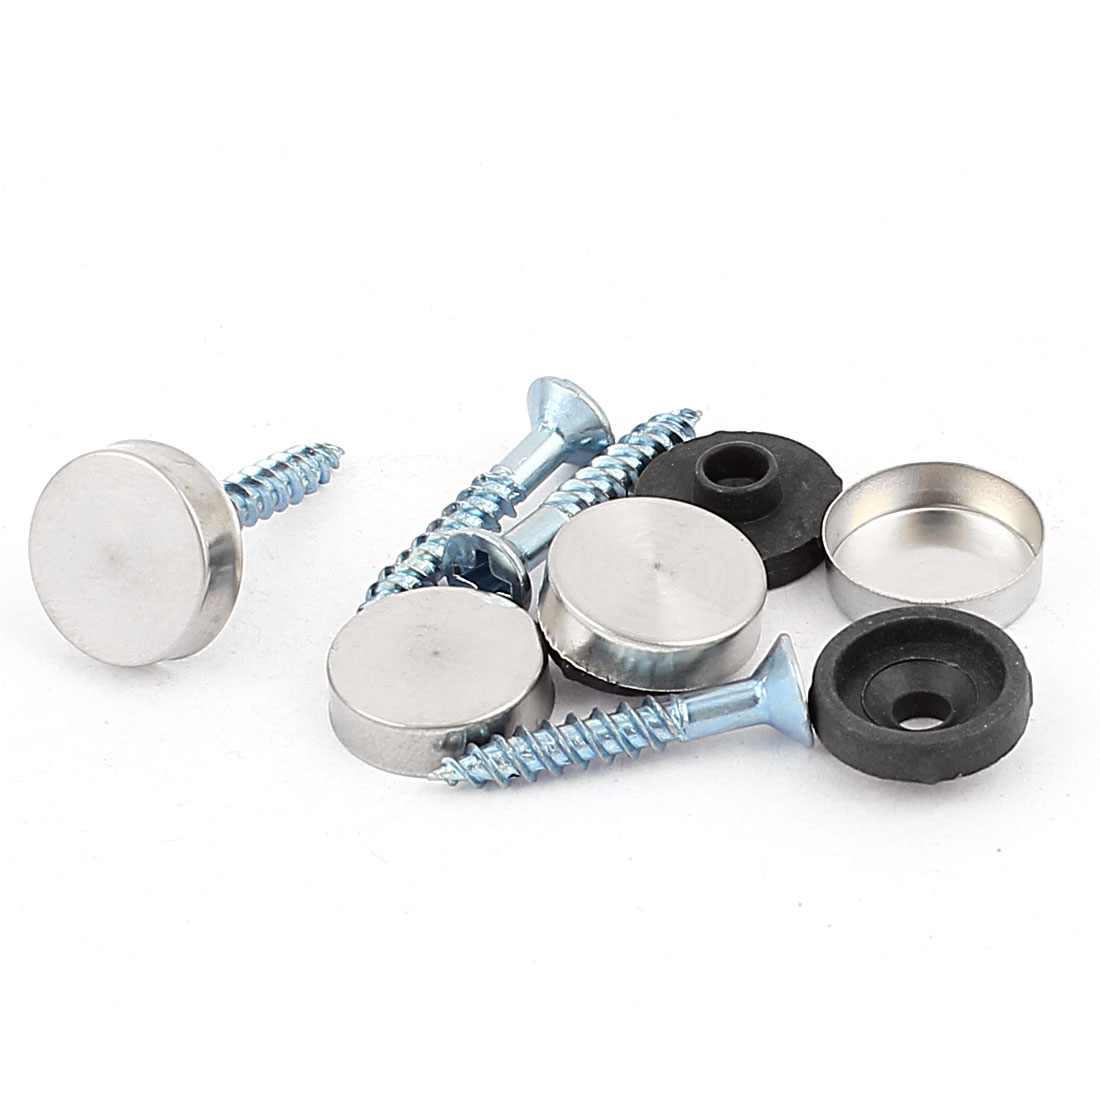 4 Pcs Anti-rust Fixed Mirror Nail Pad Decorative Fasteners Billboard Studded 14mm Diameter